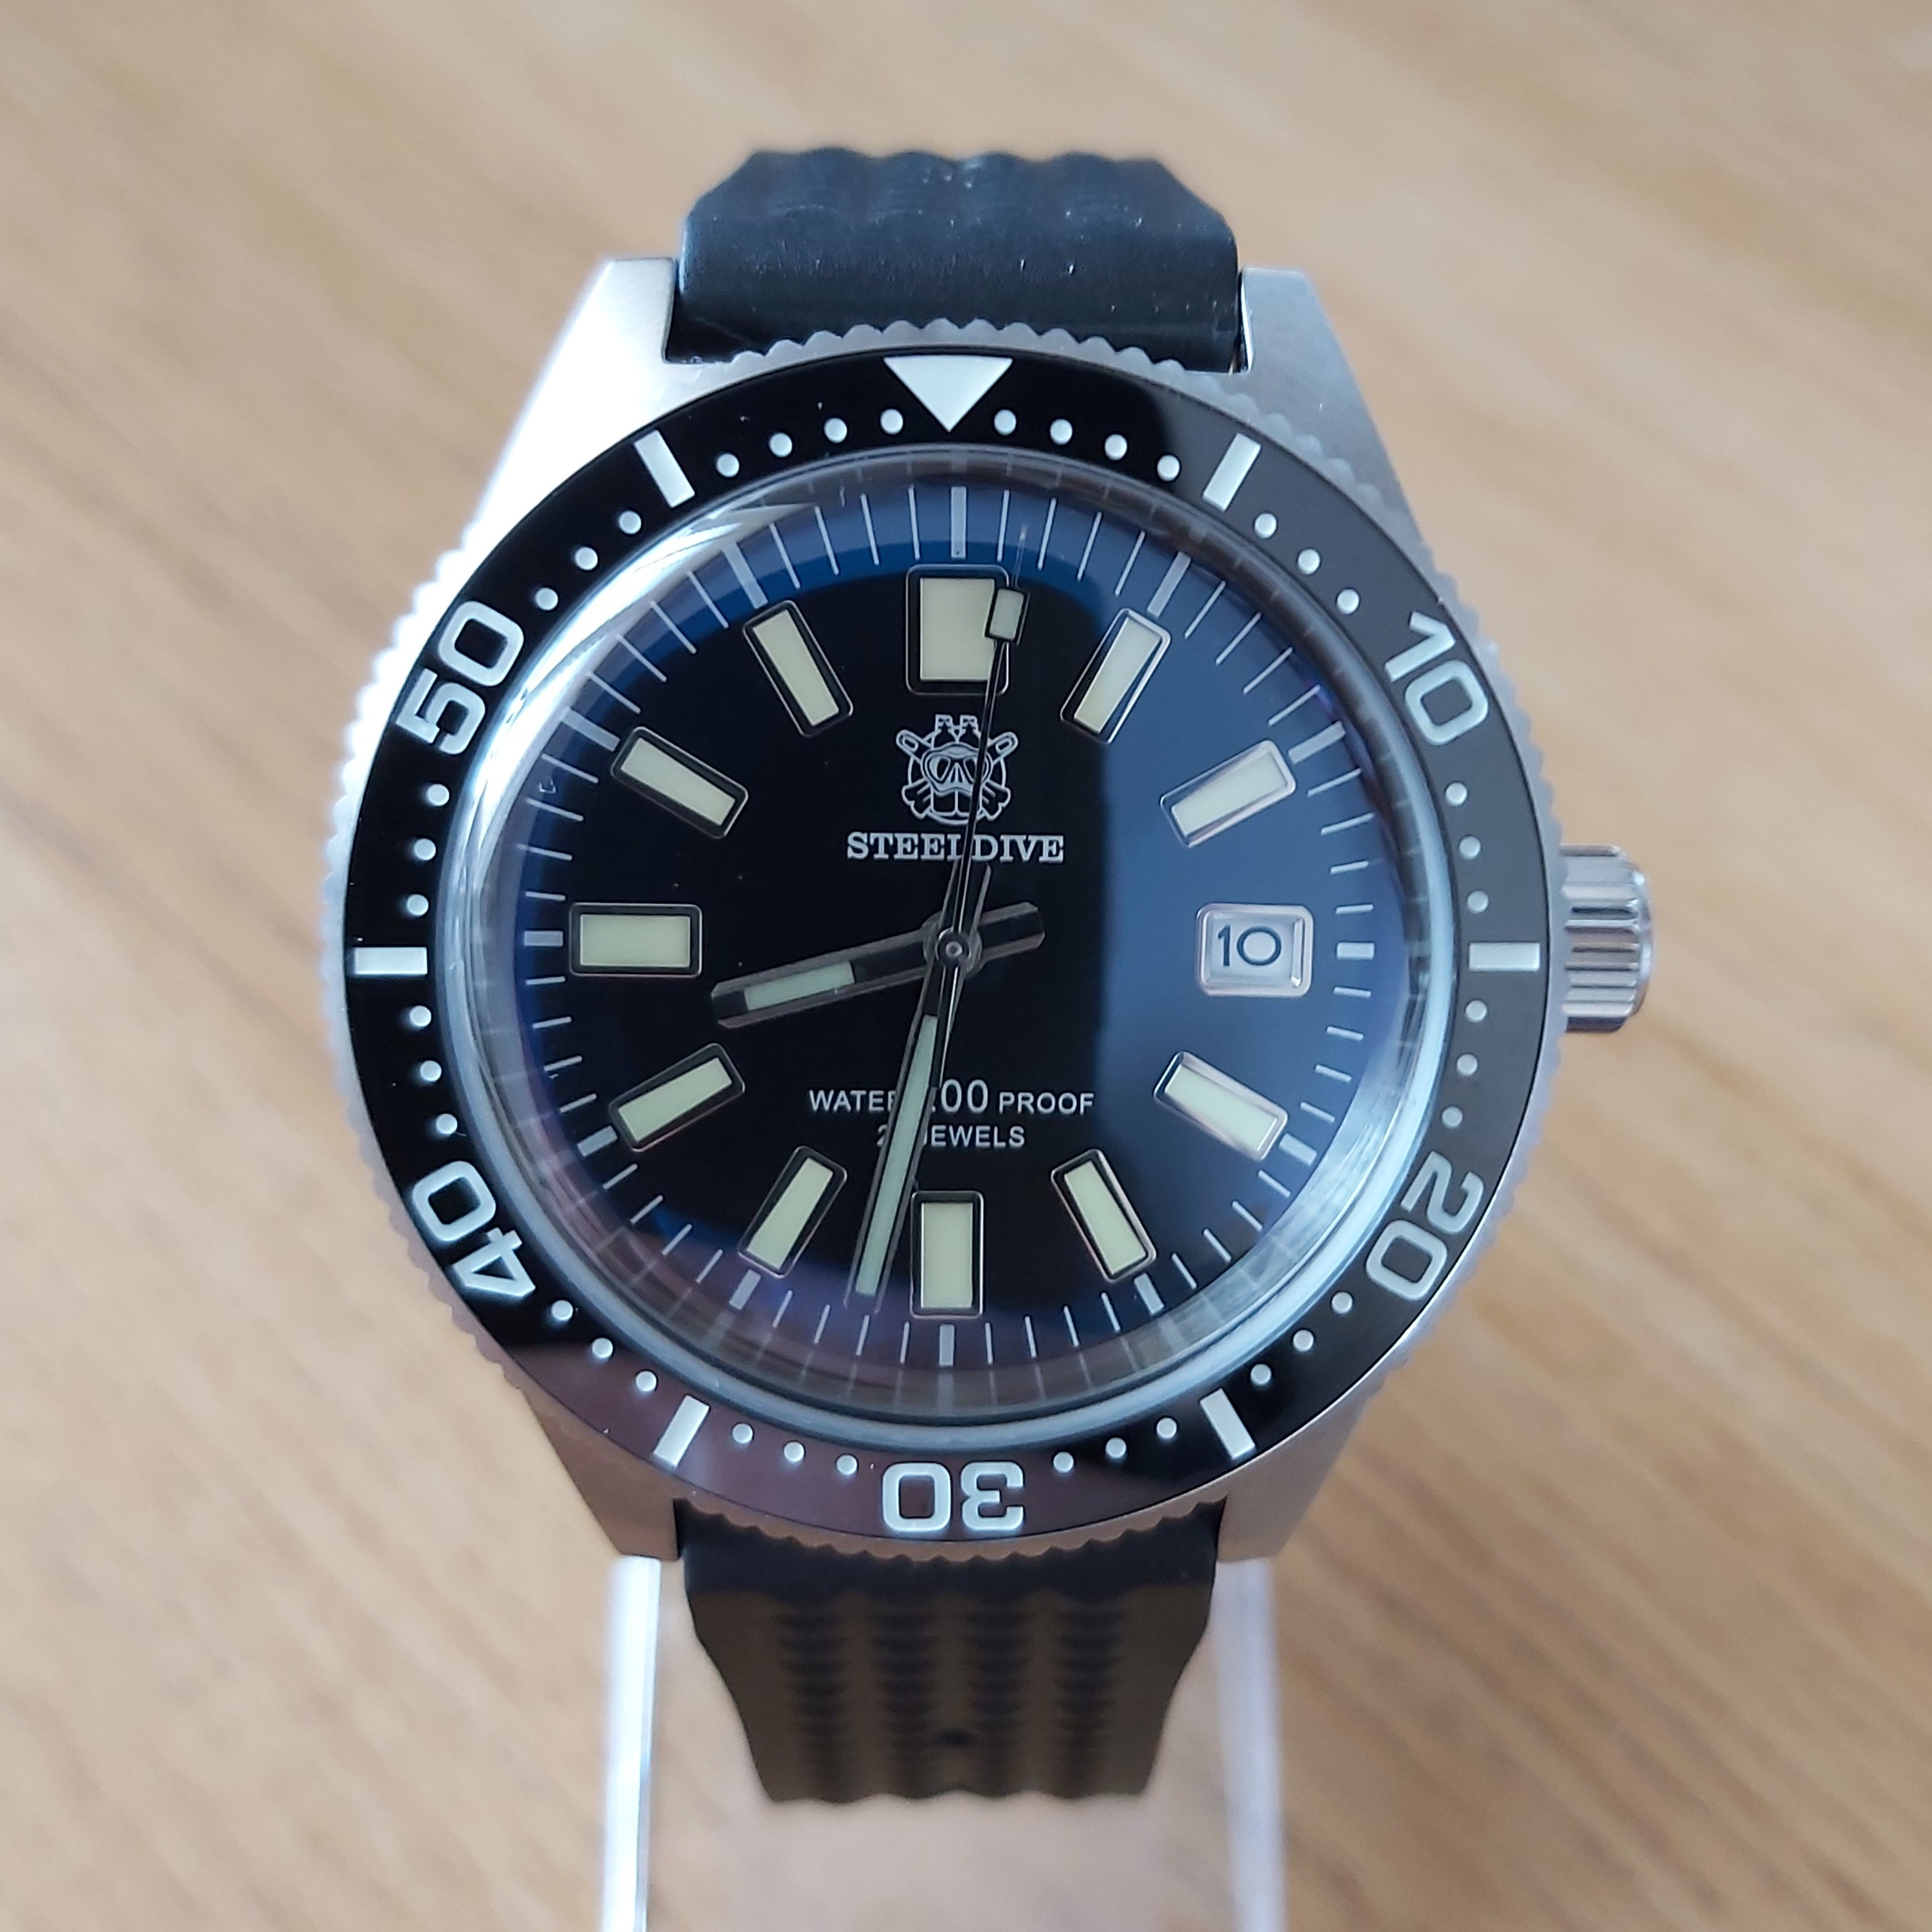 Steeldive SD1962 200M Dive Watch - The 62MAS Homage